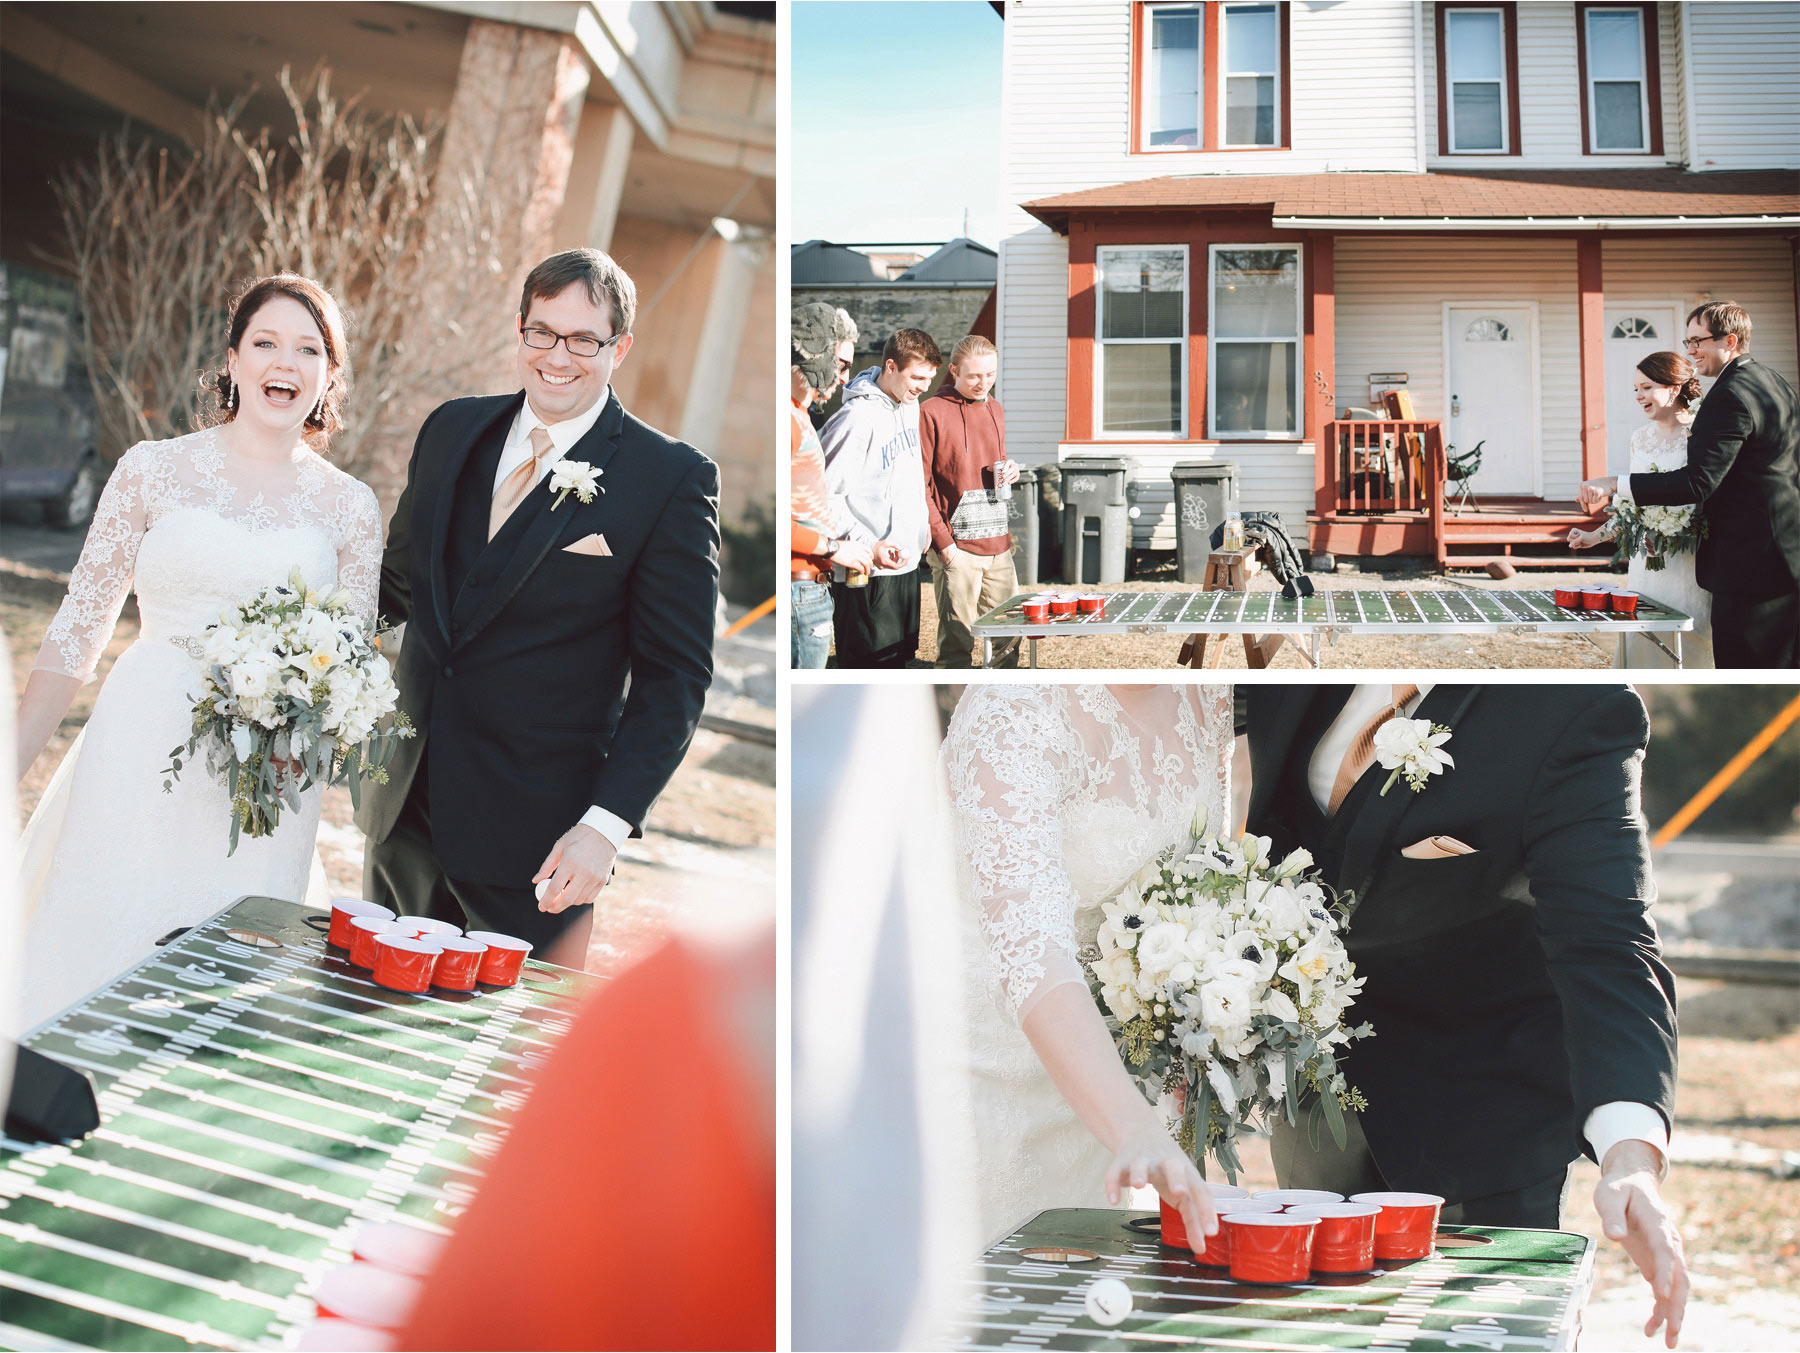 11-Minneapolis-Minnesota-Wedding-Photographer-by-Andrew-Vick-Photography-Winter-Bride-Groom-Beer-Pong-Fraternity-College-Vintage-Sara-and-Rob.jpg